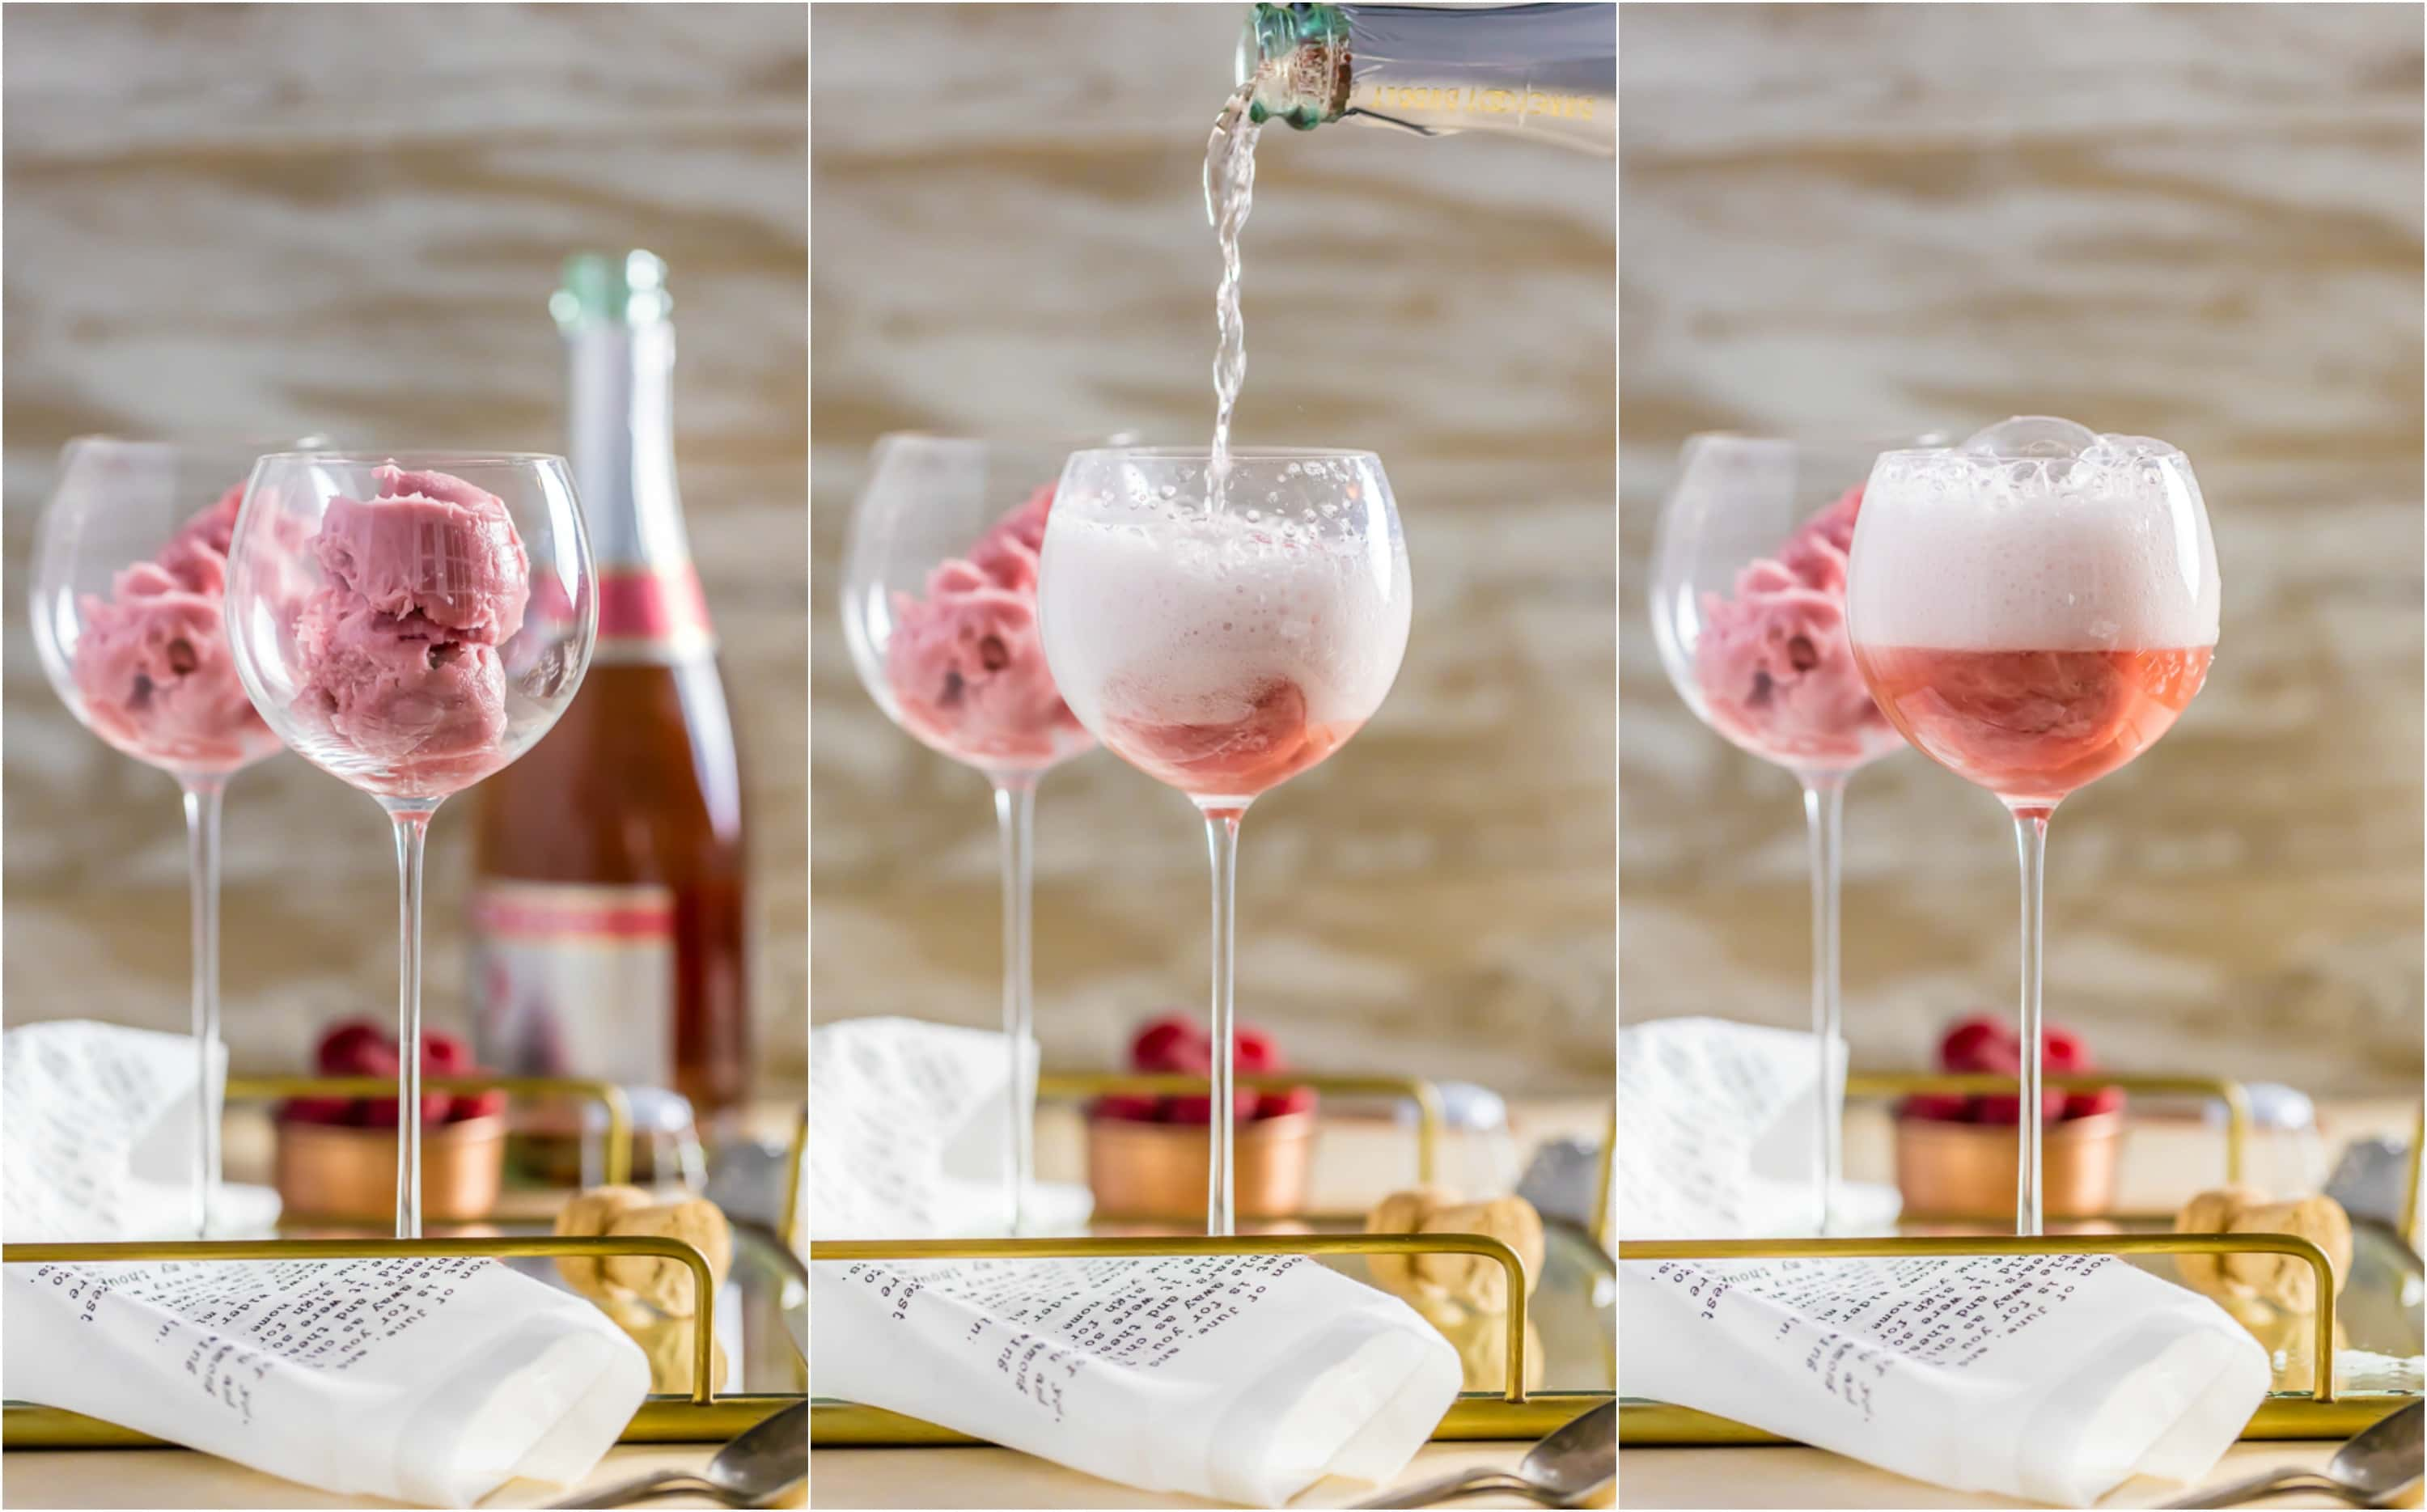 three photo collage: two wine glasses with raspberry sorbet; pouring champagne into one glass; one glass filled with champagne bubbles